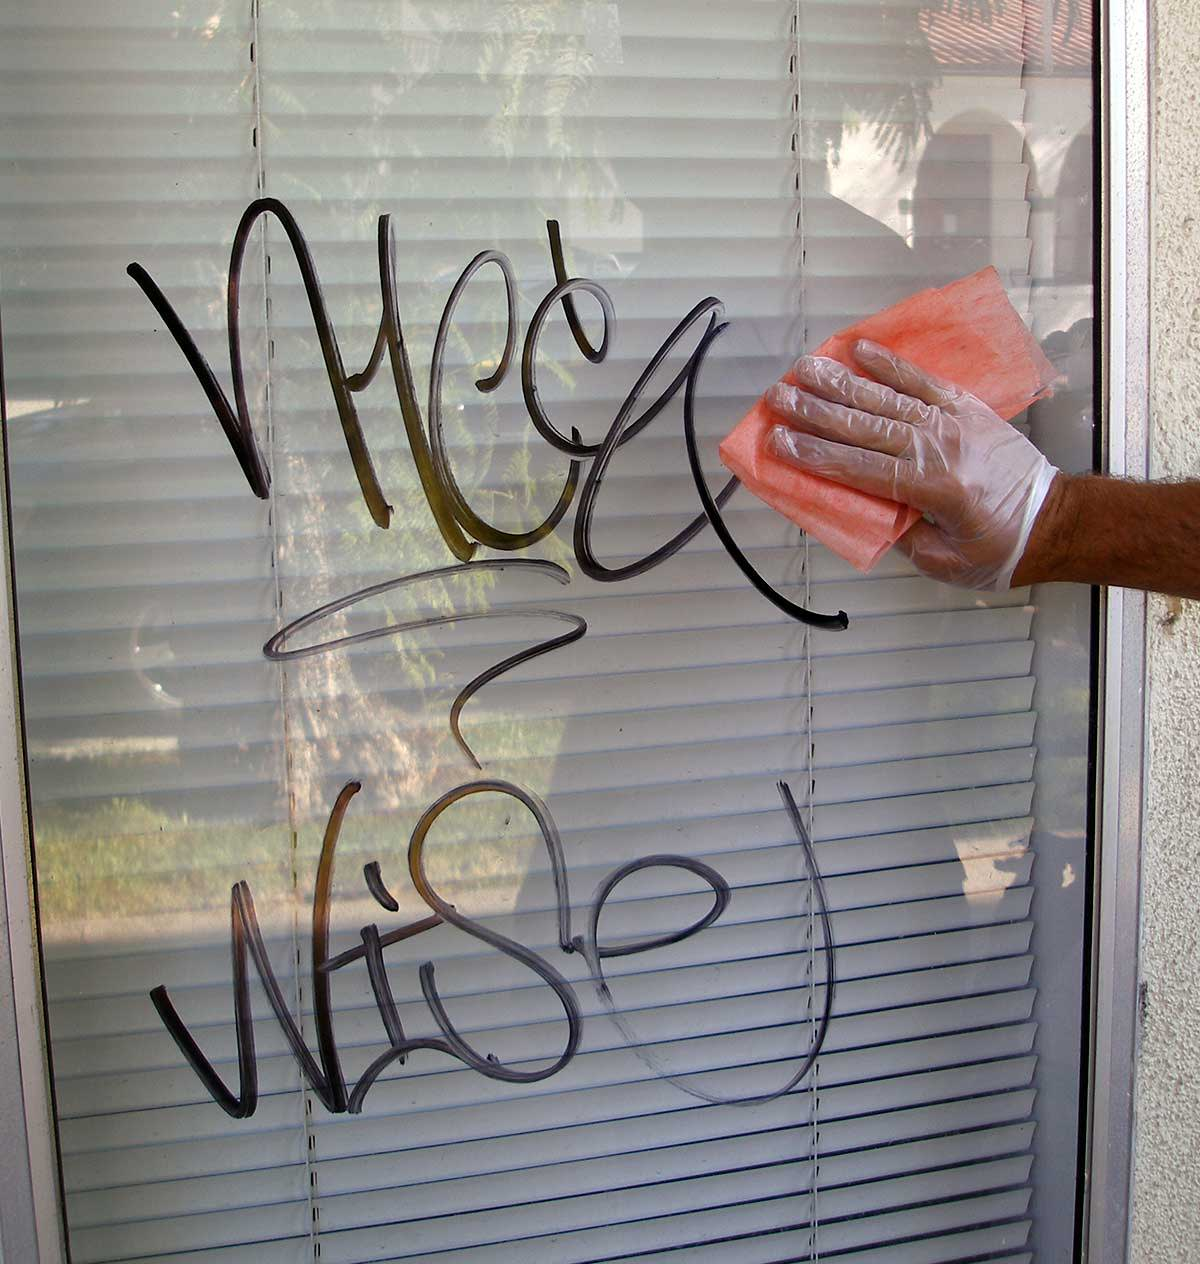 how to remove graffiti from glass window using safewipes